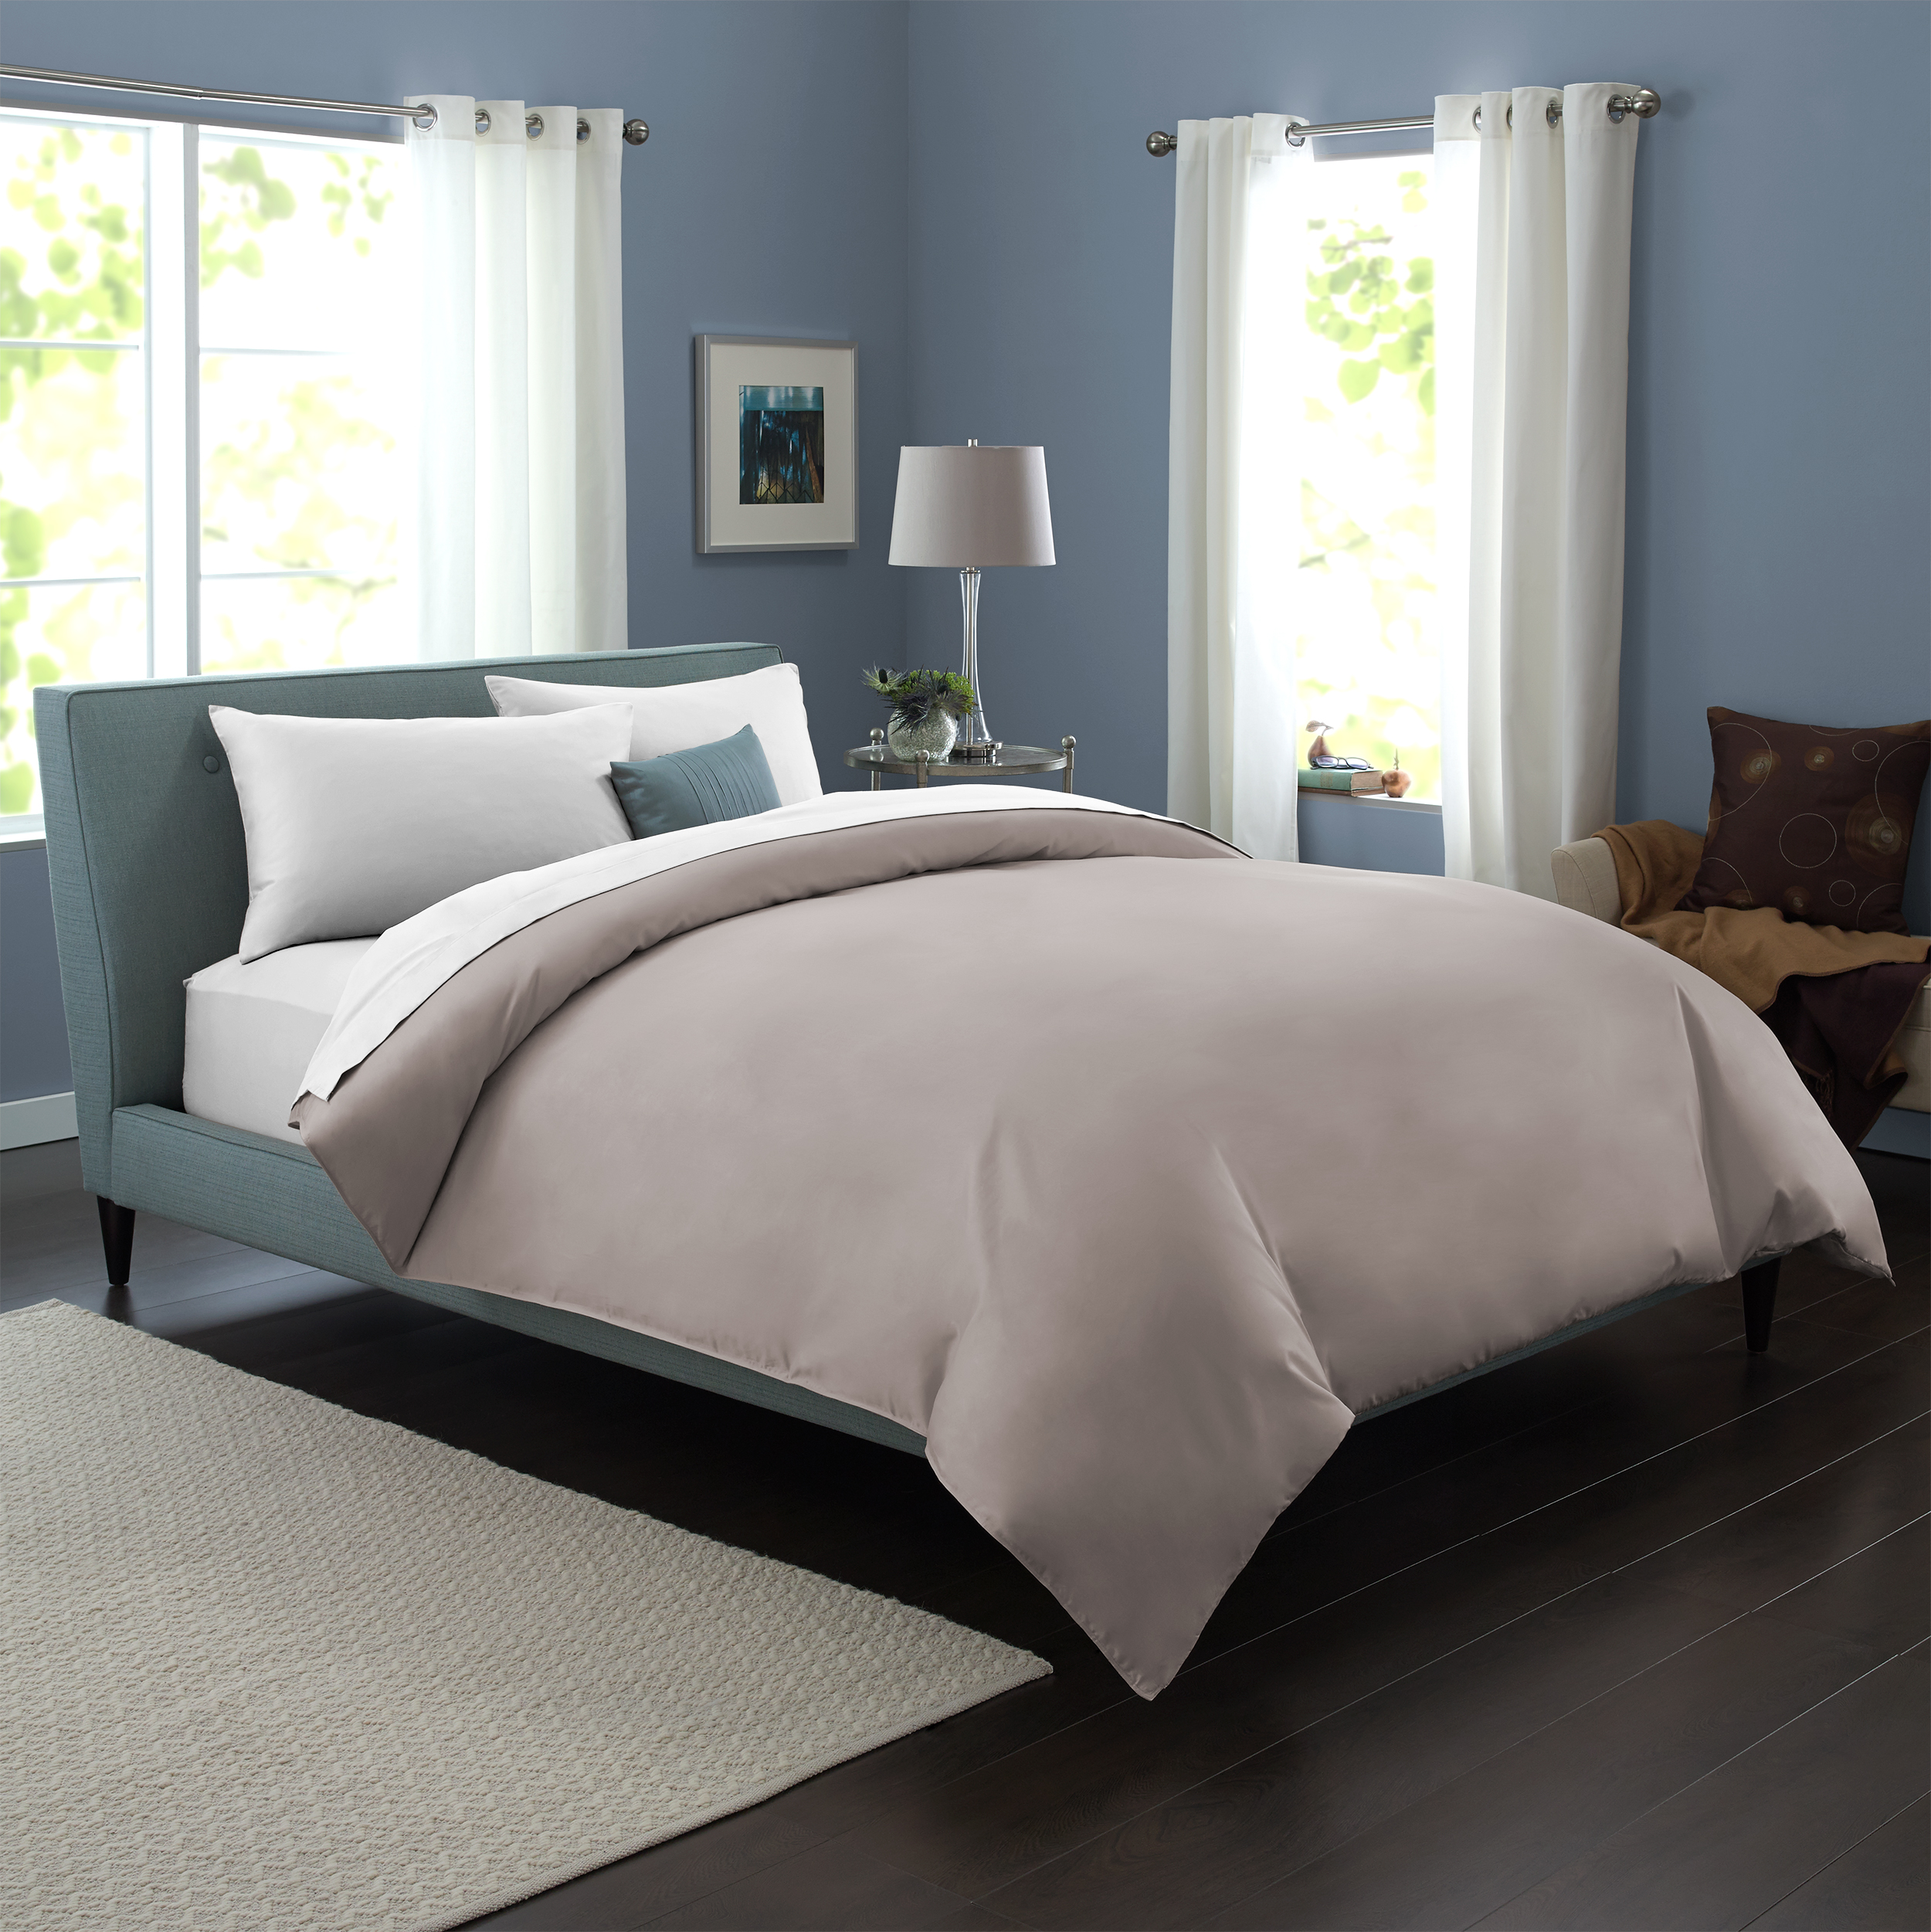 california apartment comforter walmart eeaf king home ip quilt essence bedding set com skye